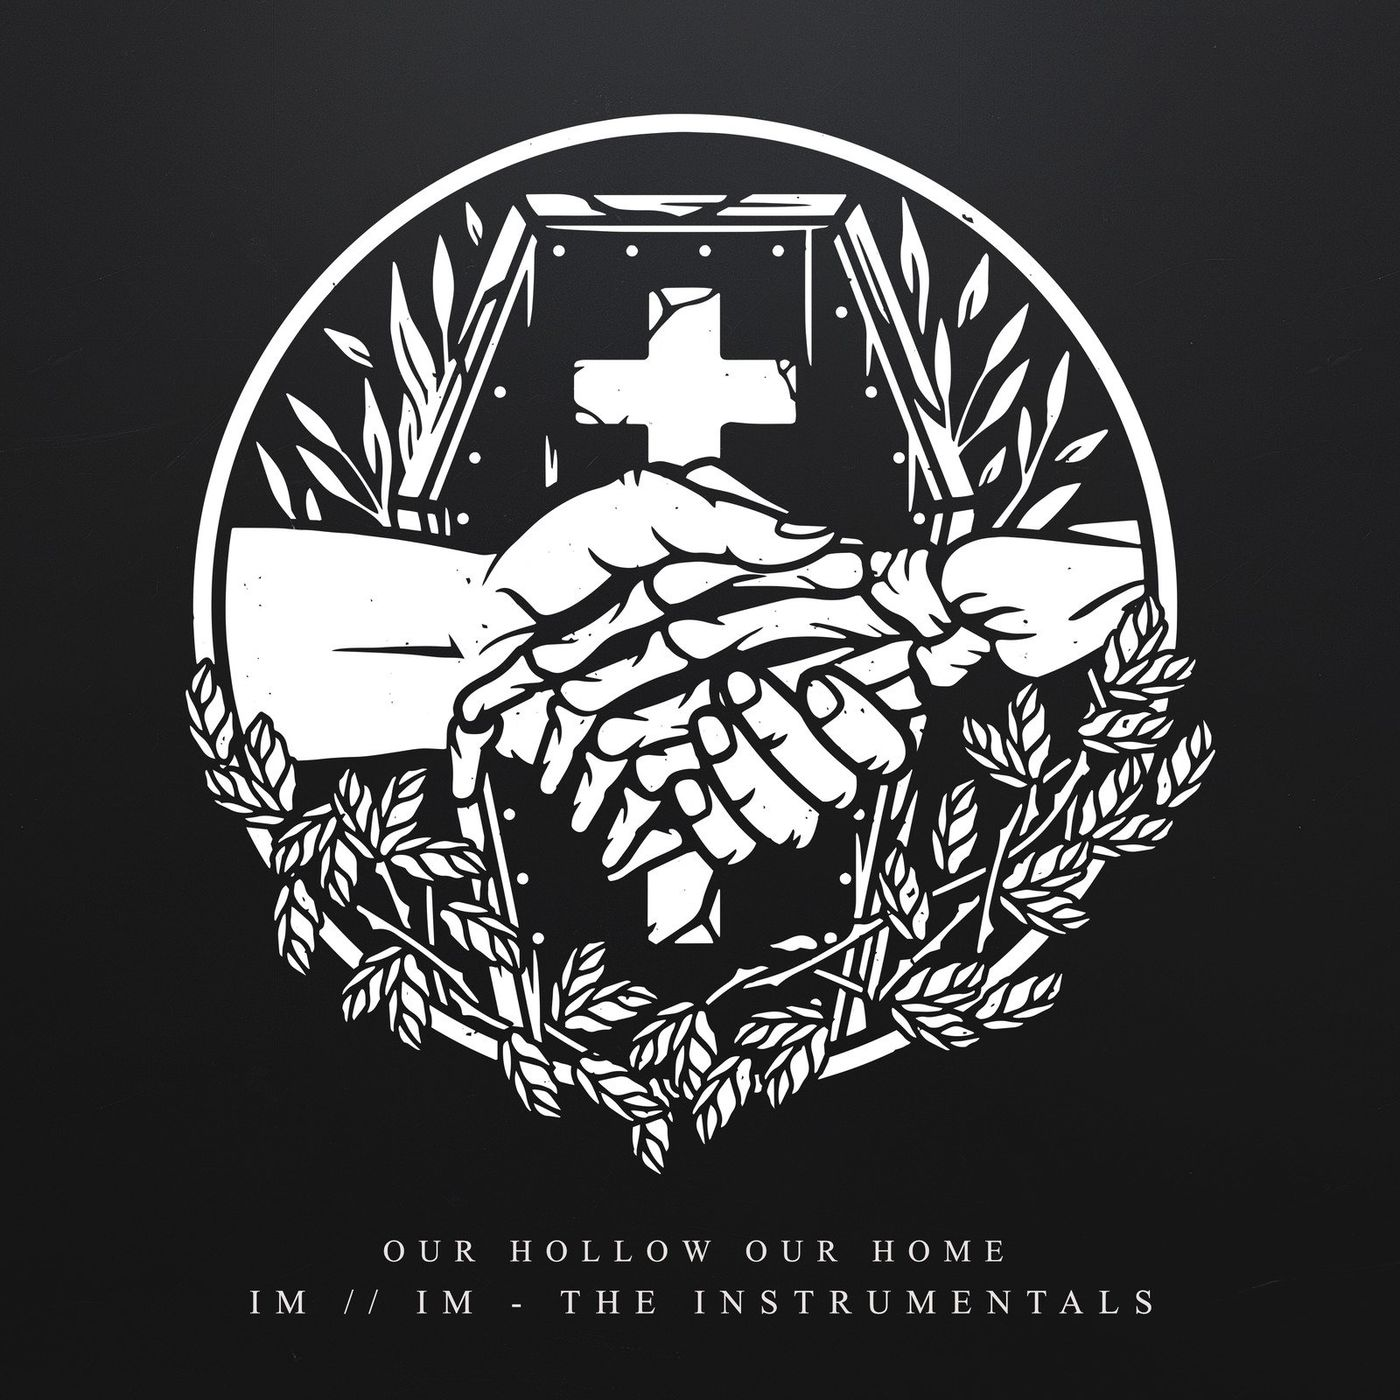 Our Hollow, Our Home - I M / / I M - The Instrumentals (2020)